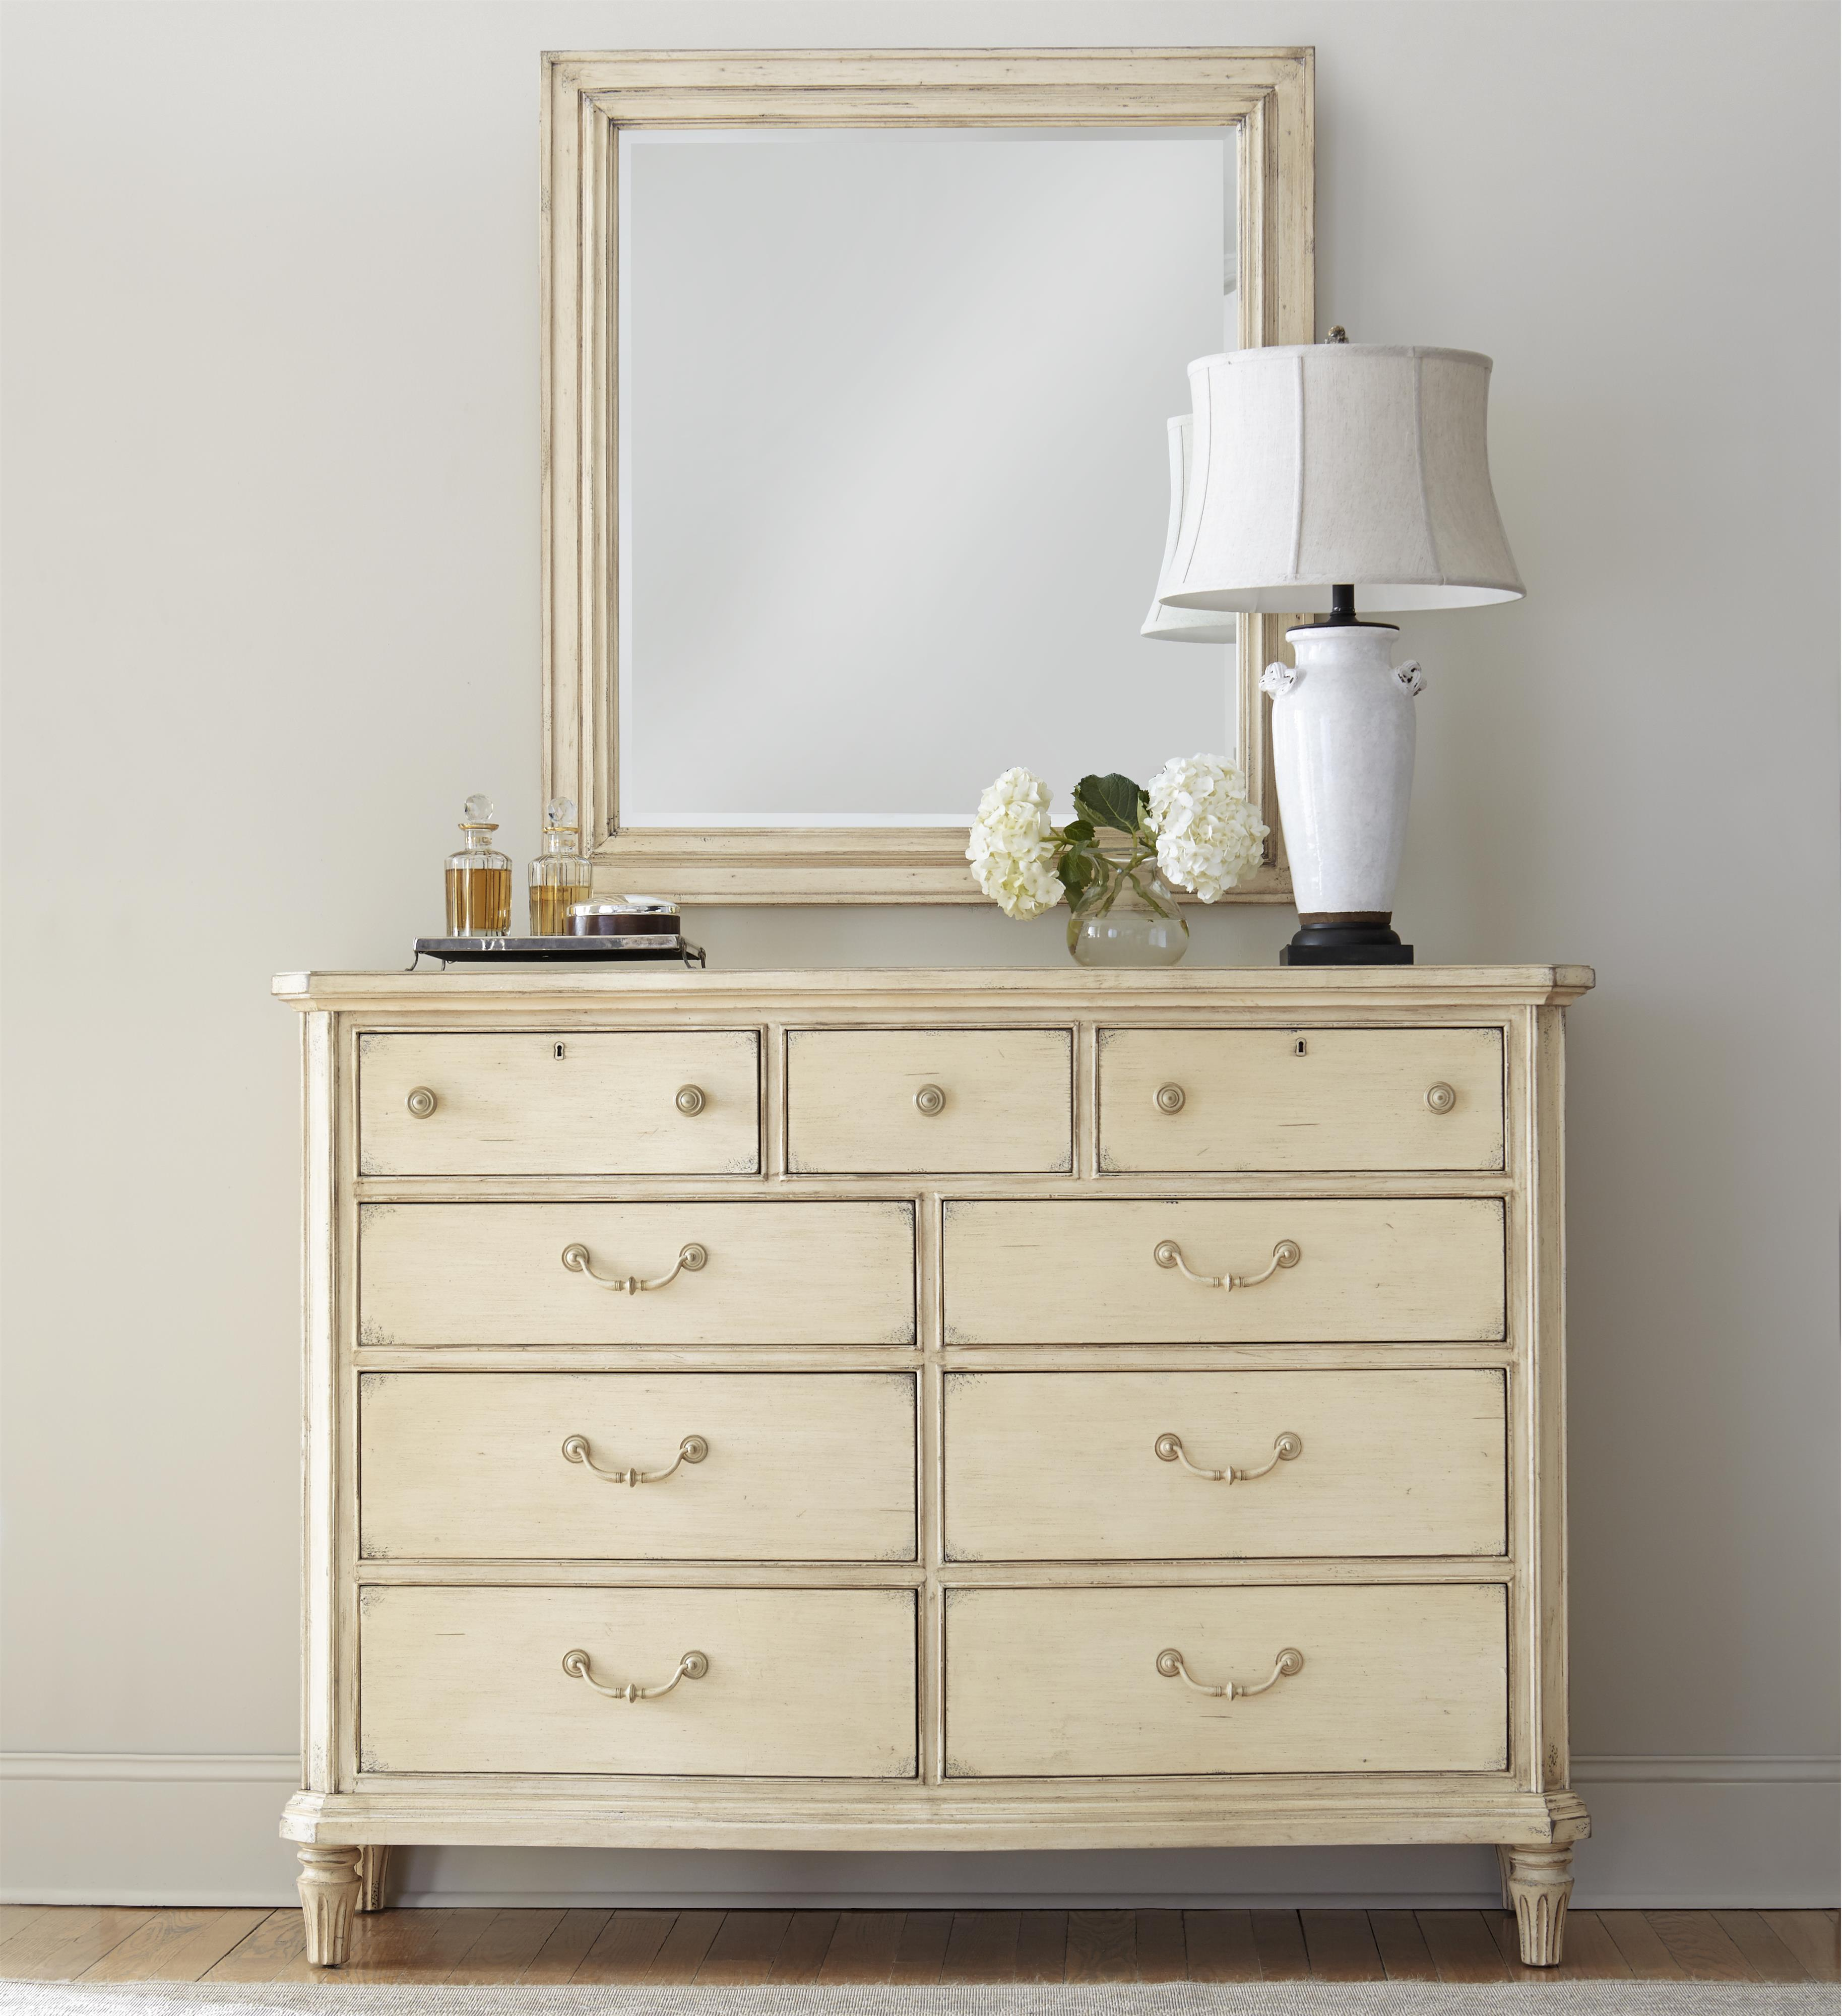 Stanley Furniture European Cottage Dresser with Mirror - Item Number: 007-23-06+30